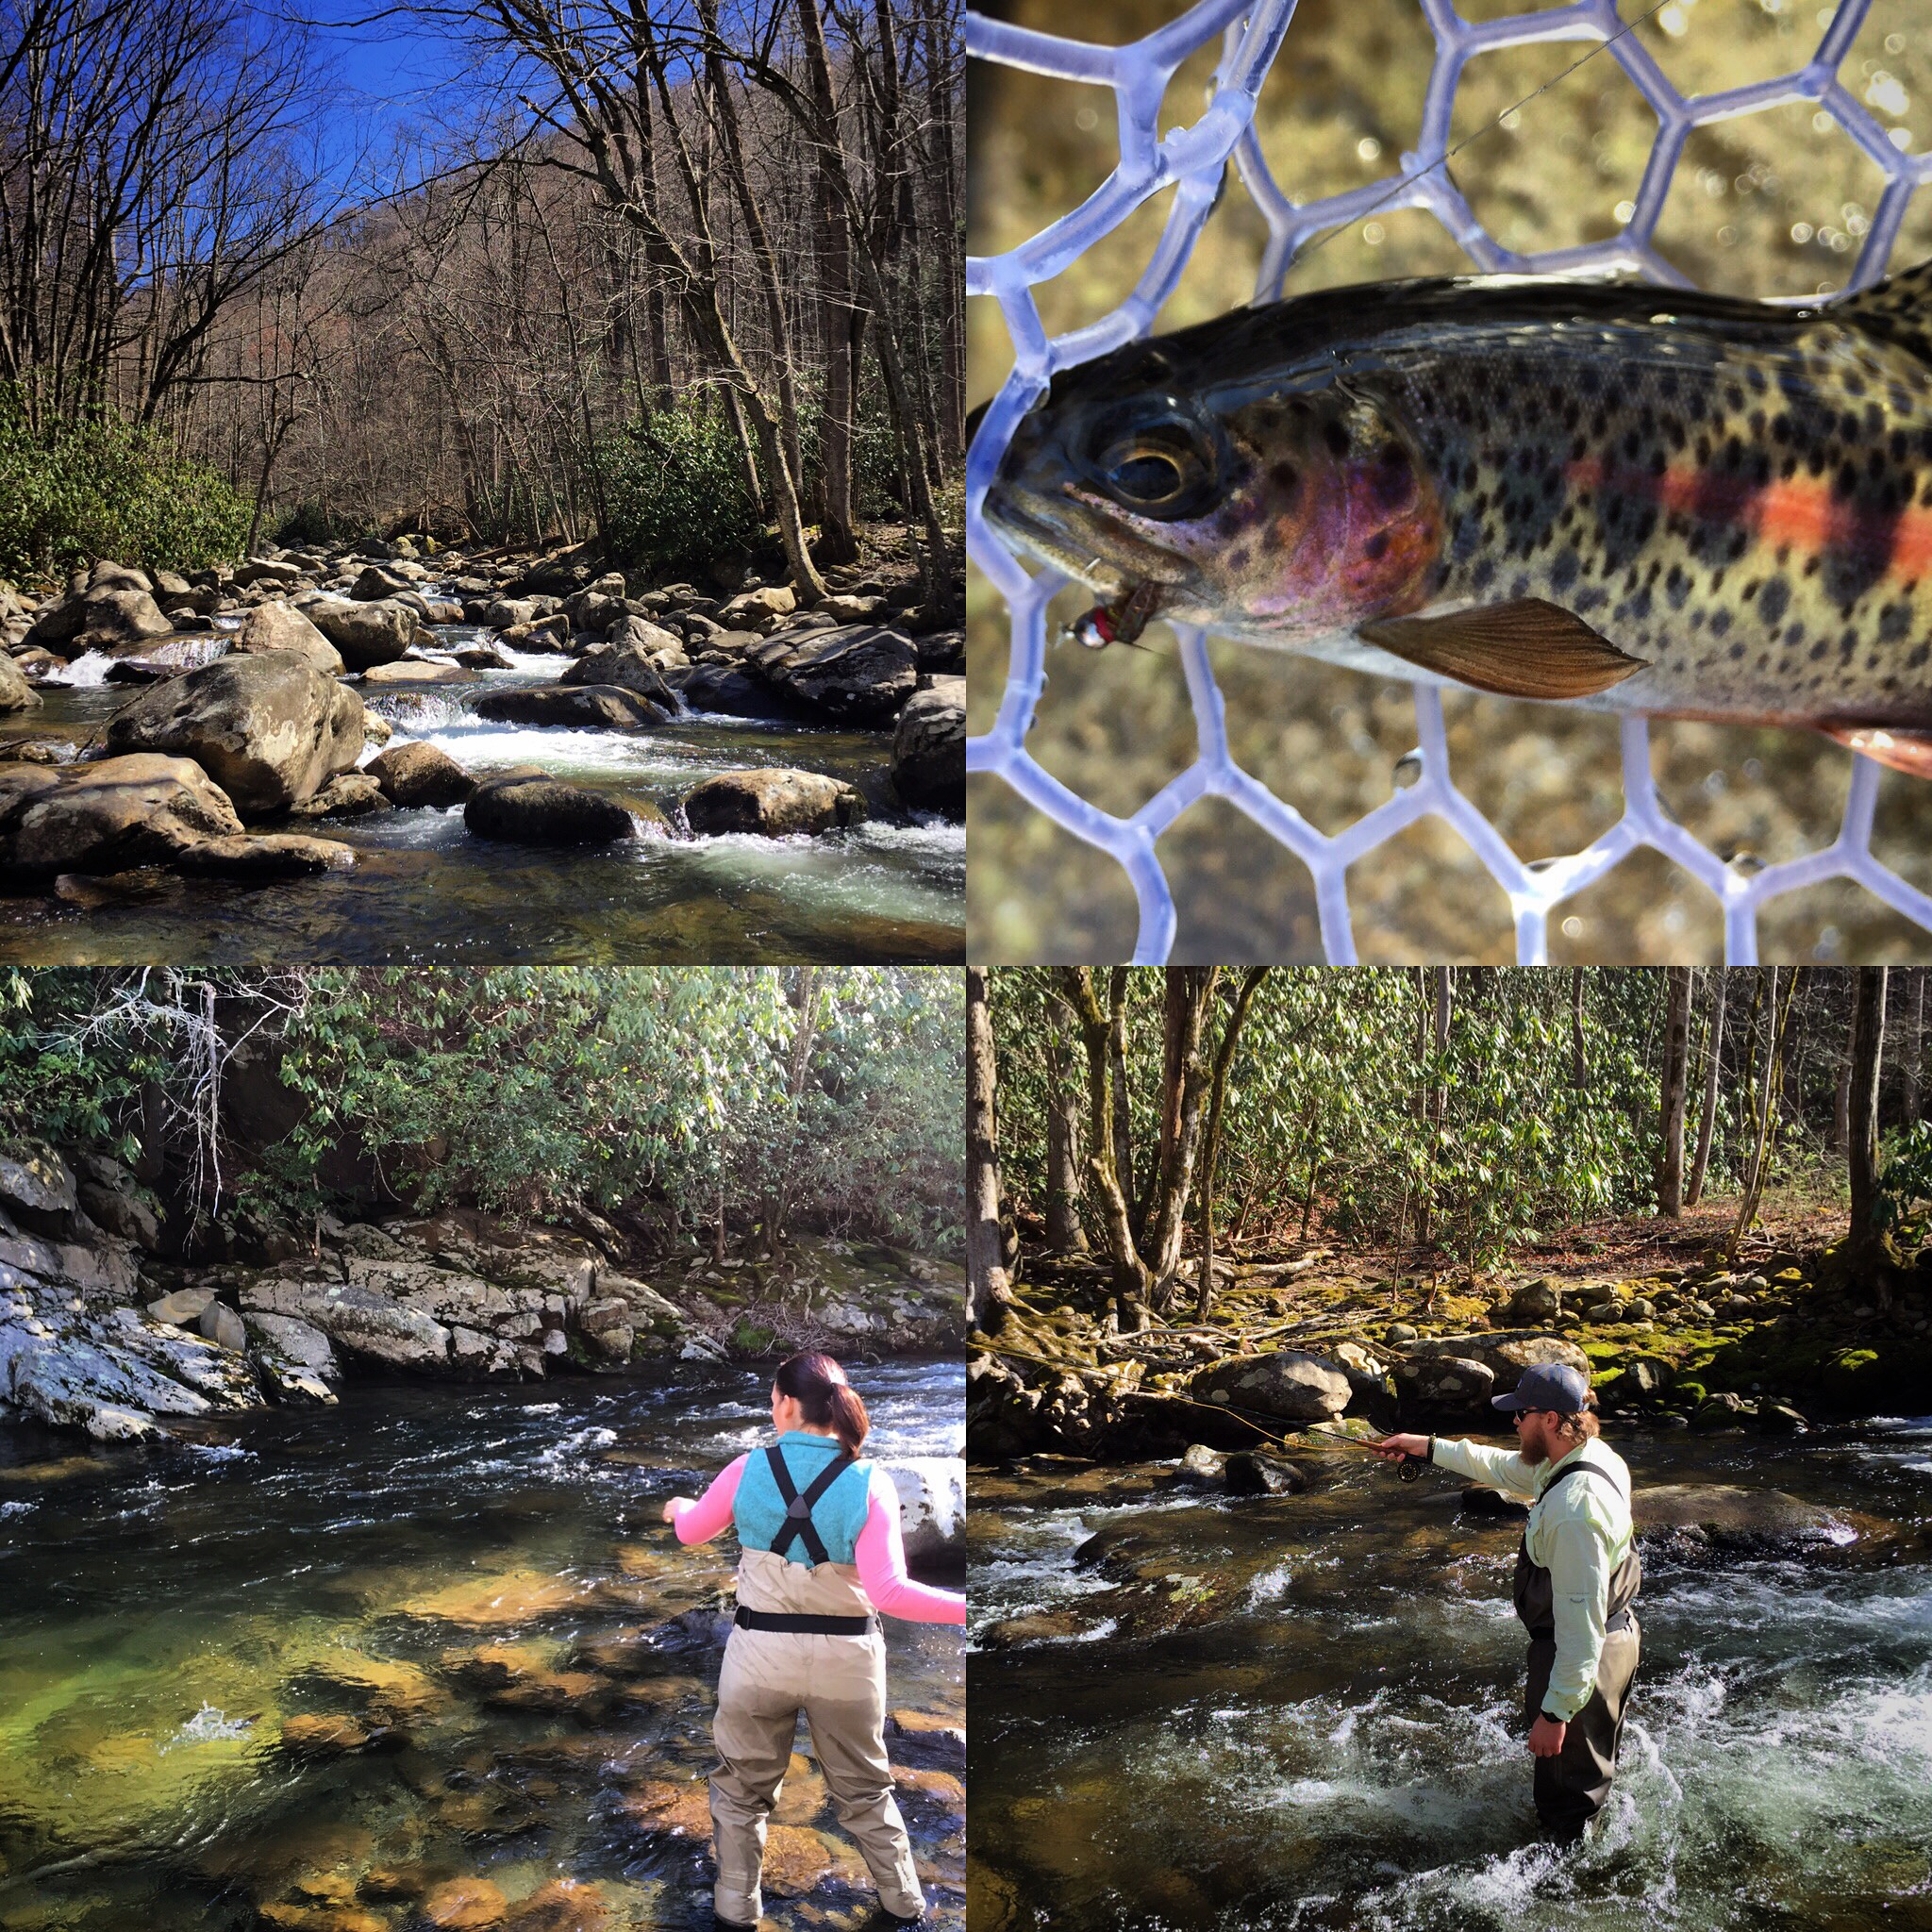 Fishing trips in western north carolina hookers fly shop for Fly fishing vacation packages